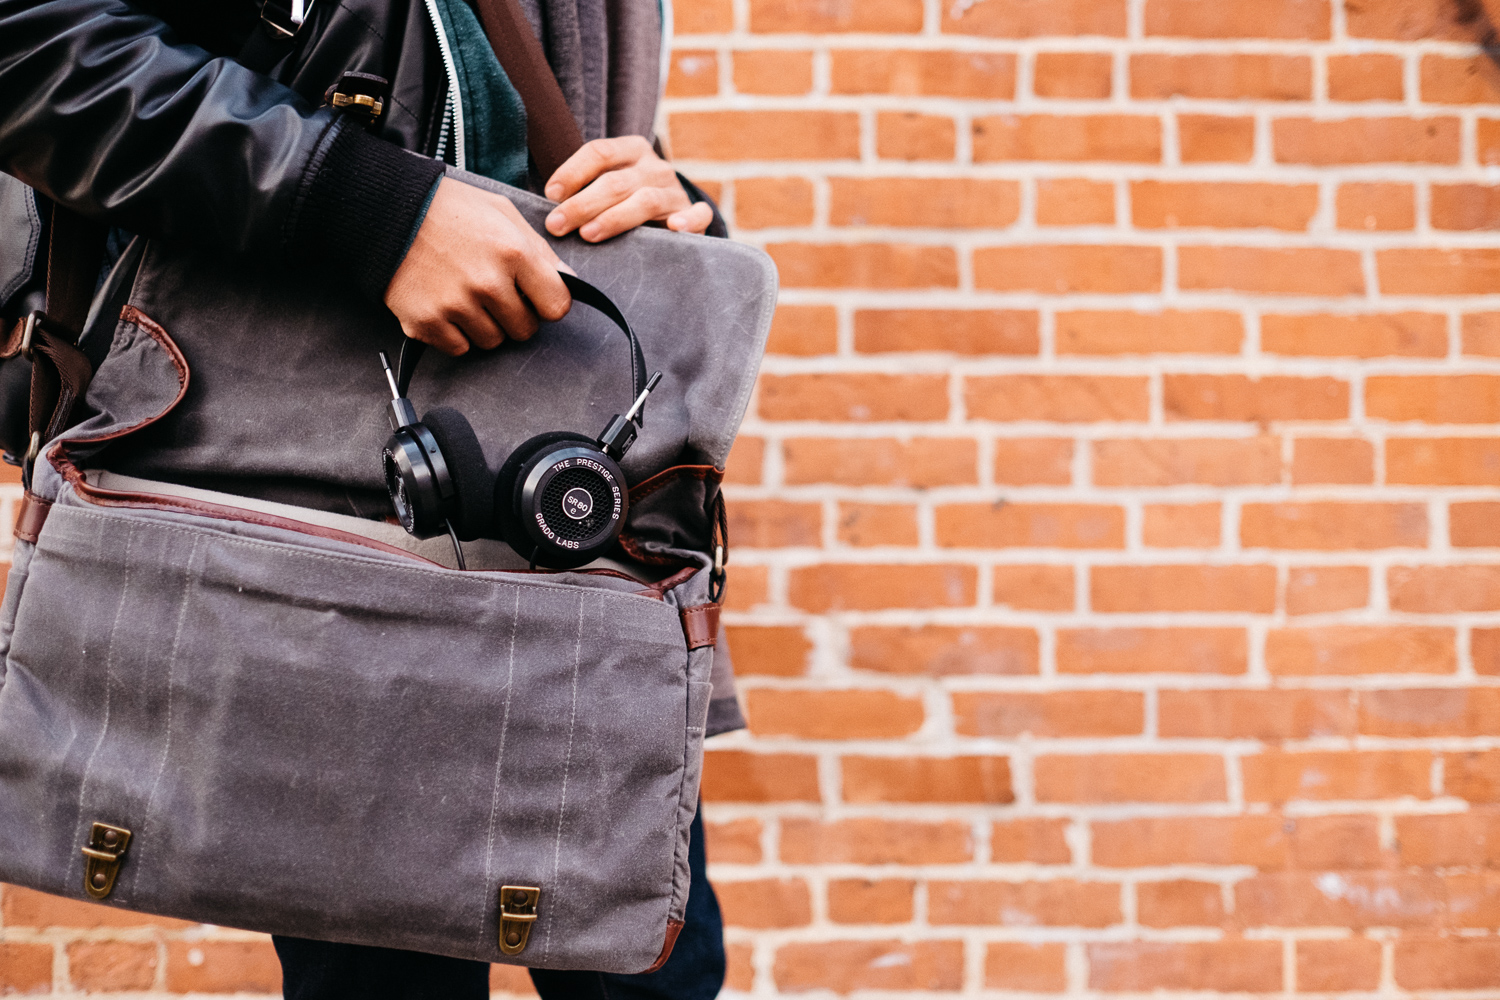 Grado SR80e Headphones ONA Bag Williamsburg Shoot